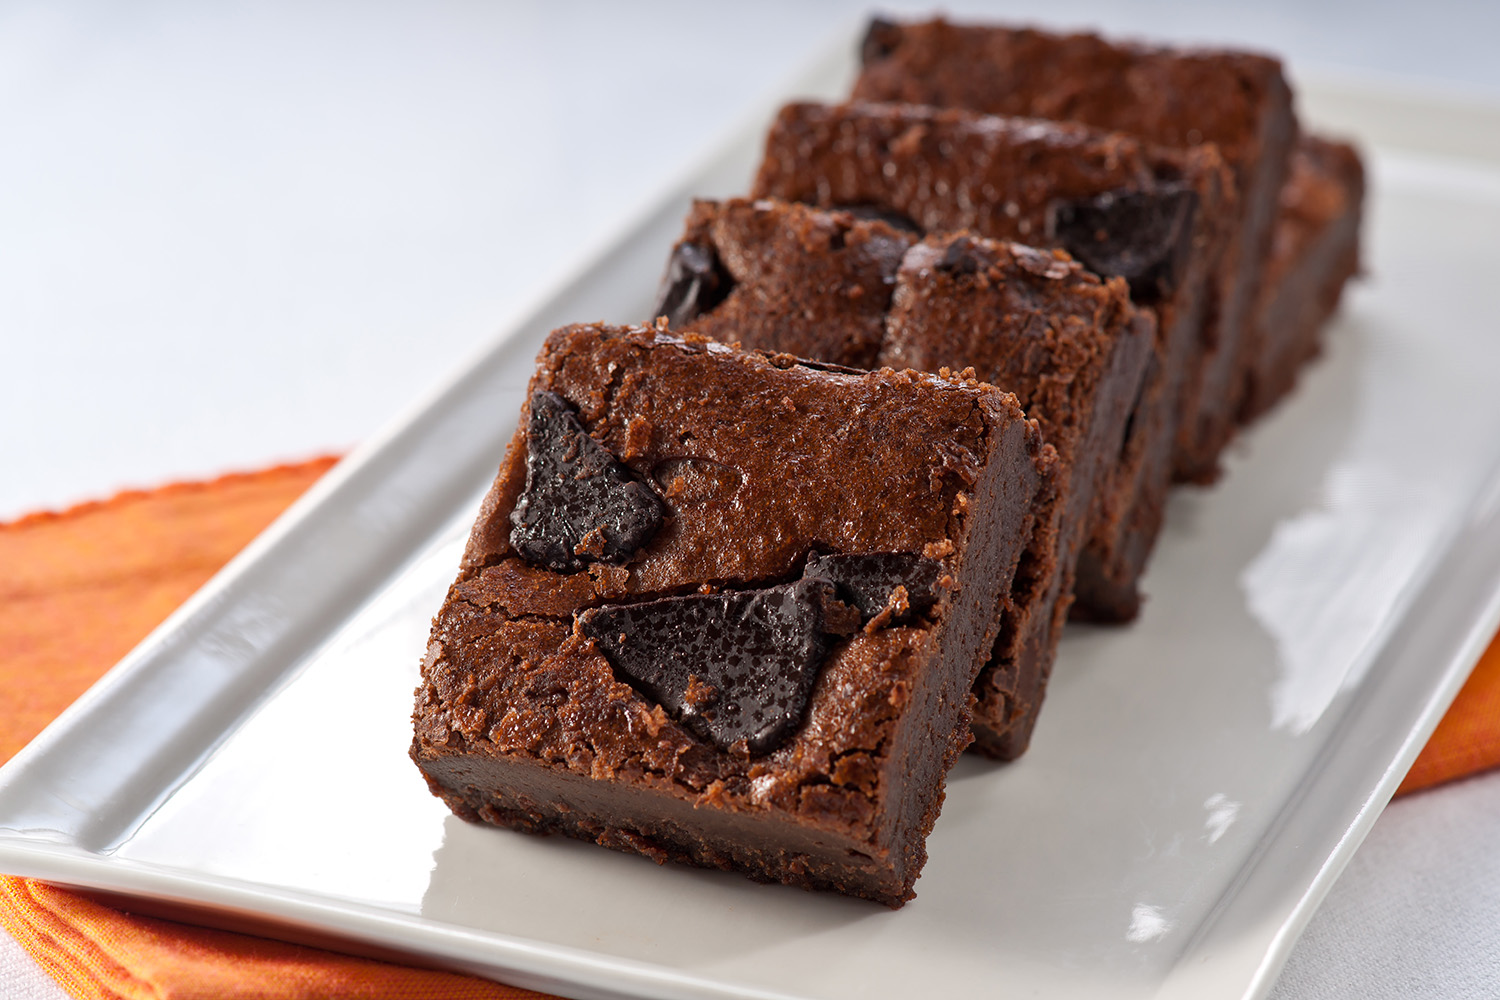 Double Fudge Brownie - Don't feel nutty? Enjoy the great fudge flavor of our rich, moist brownie - without the nuts - and you'll be in chocoholic heaven.